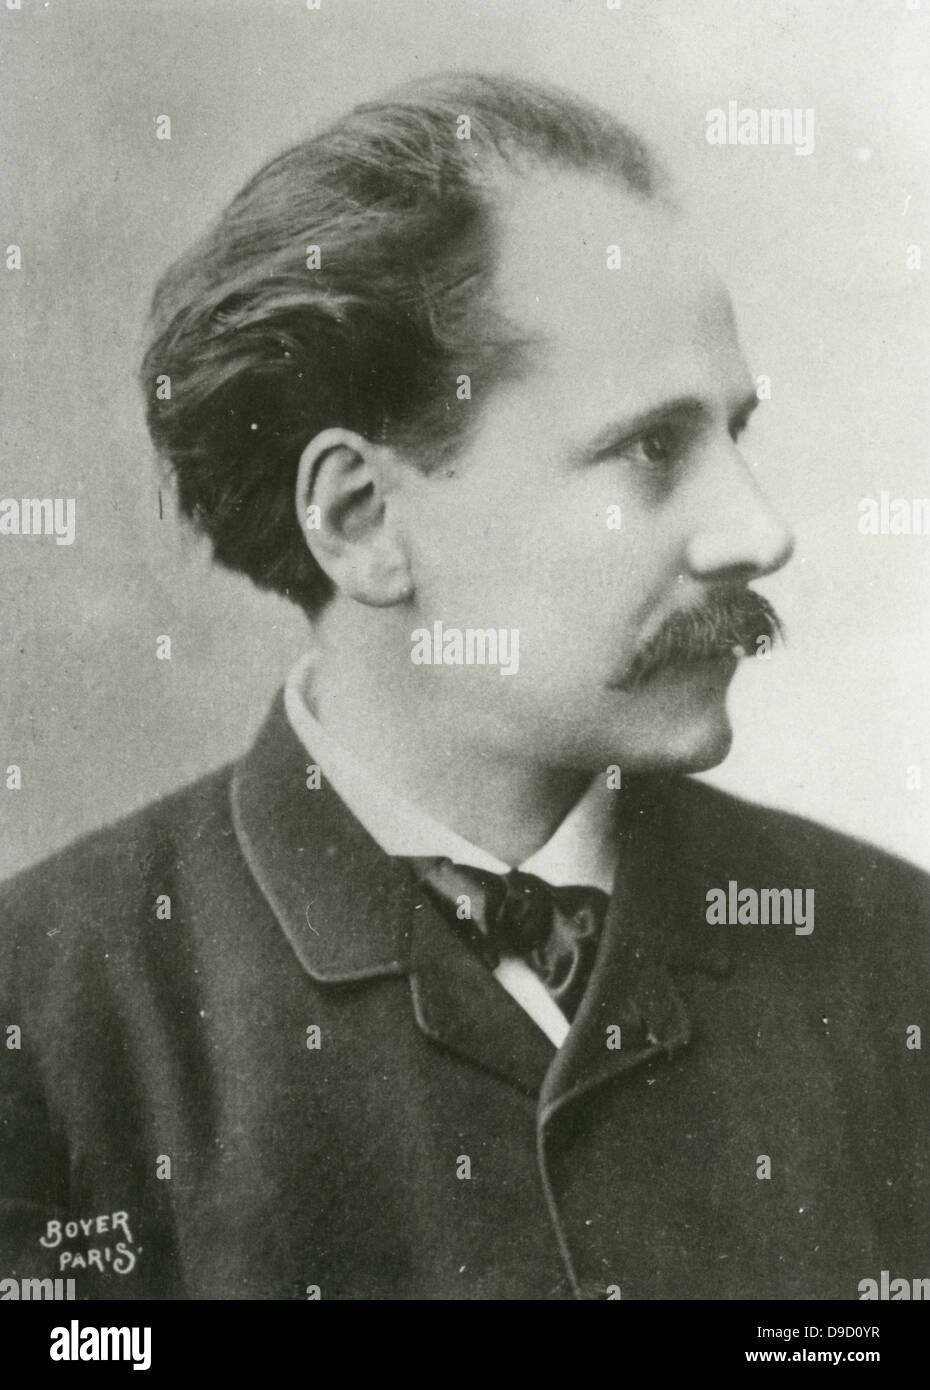 Jules Massenet (1842-1912) at the piano.  French composer best remembered for his operas. - Stock Image